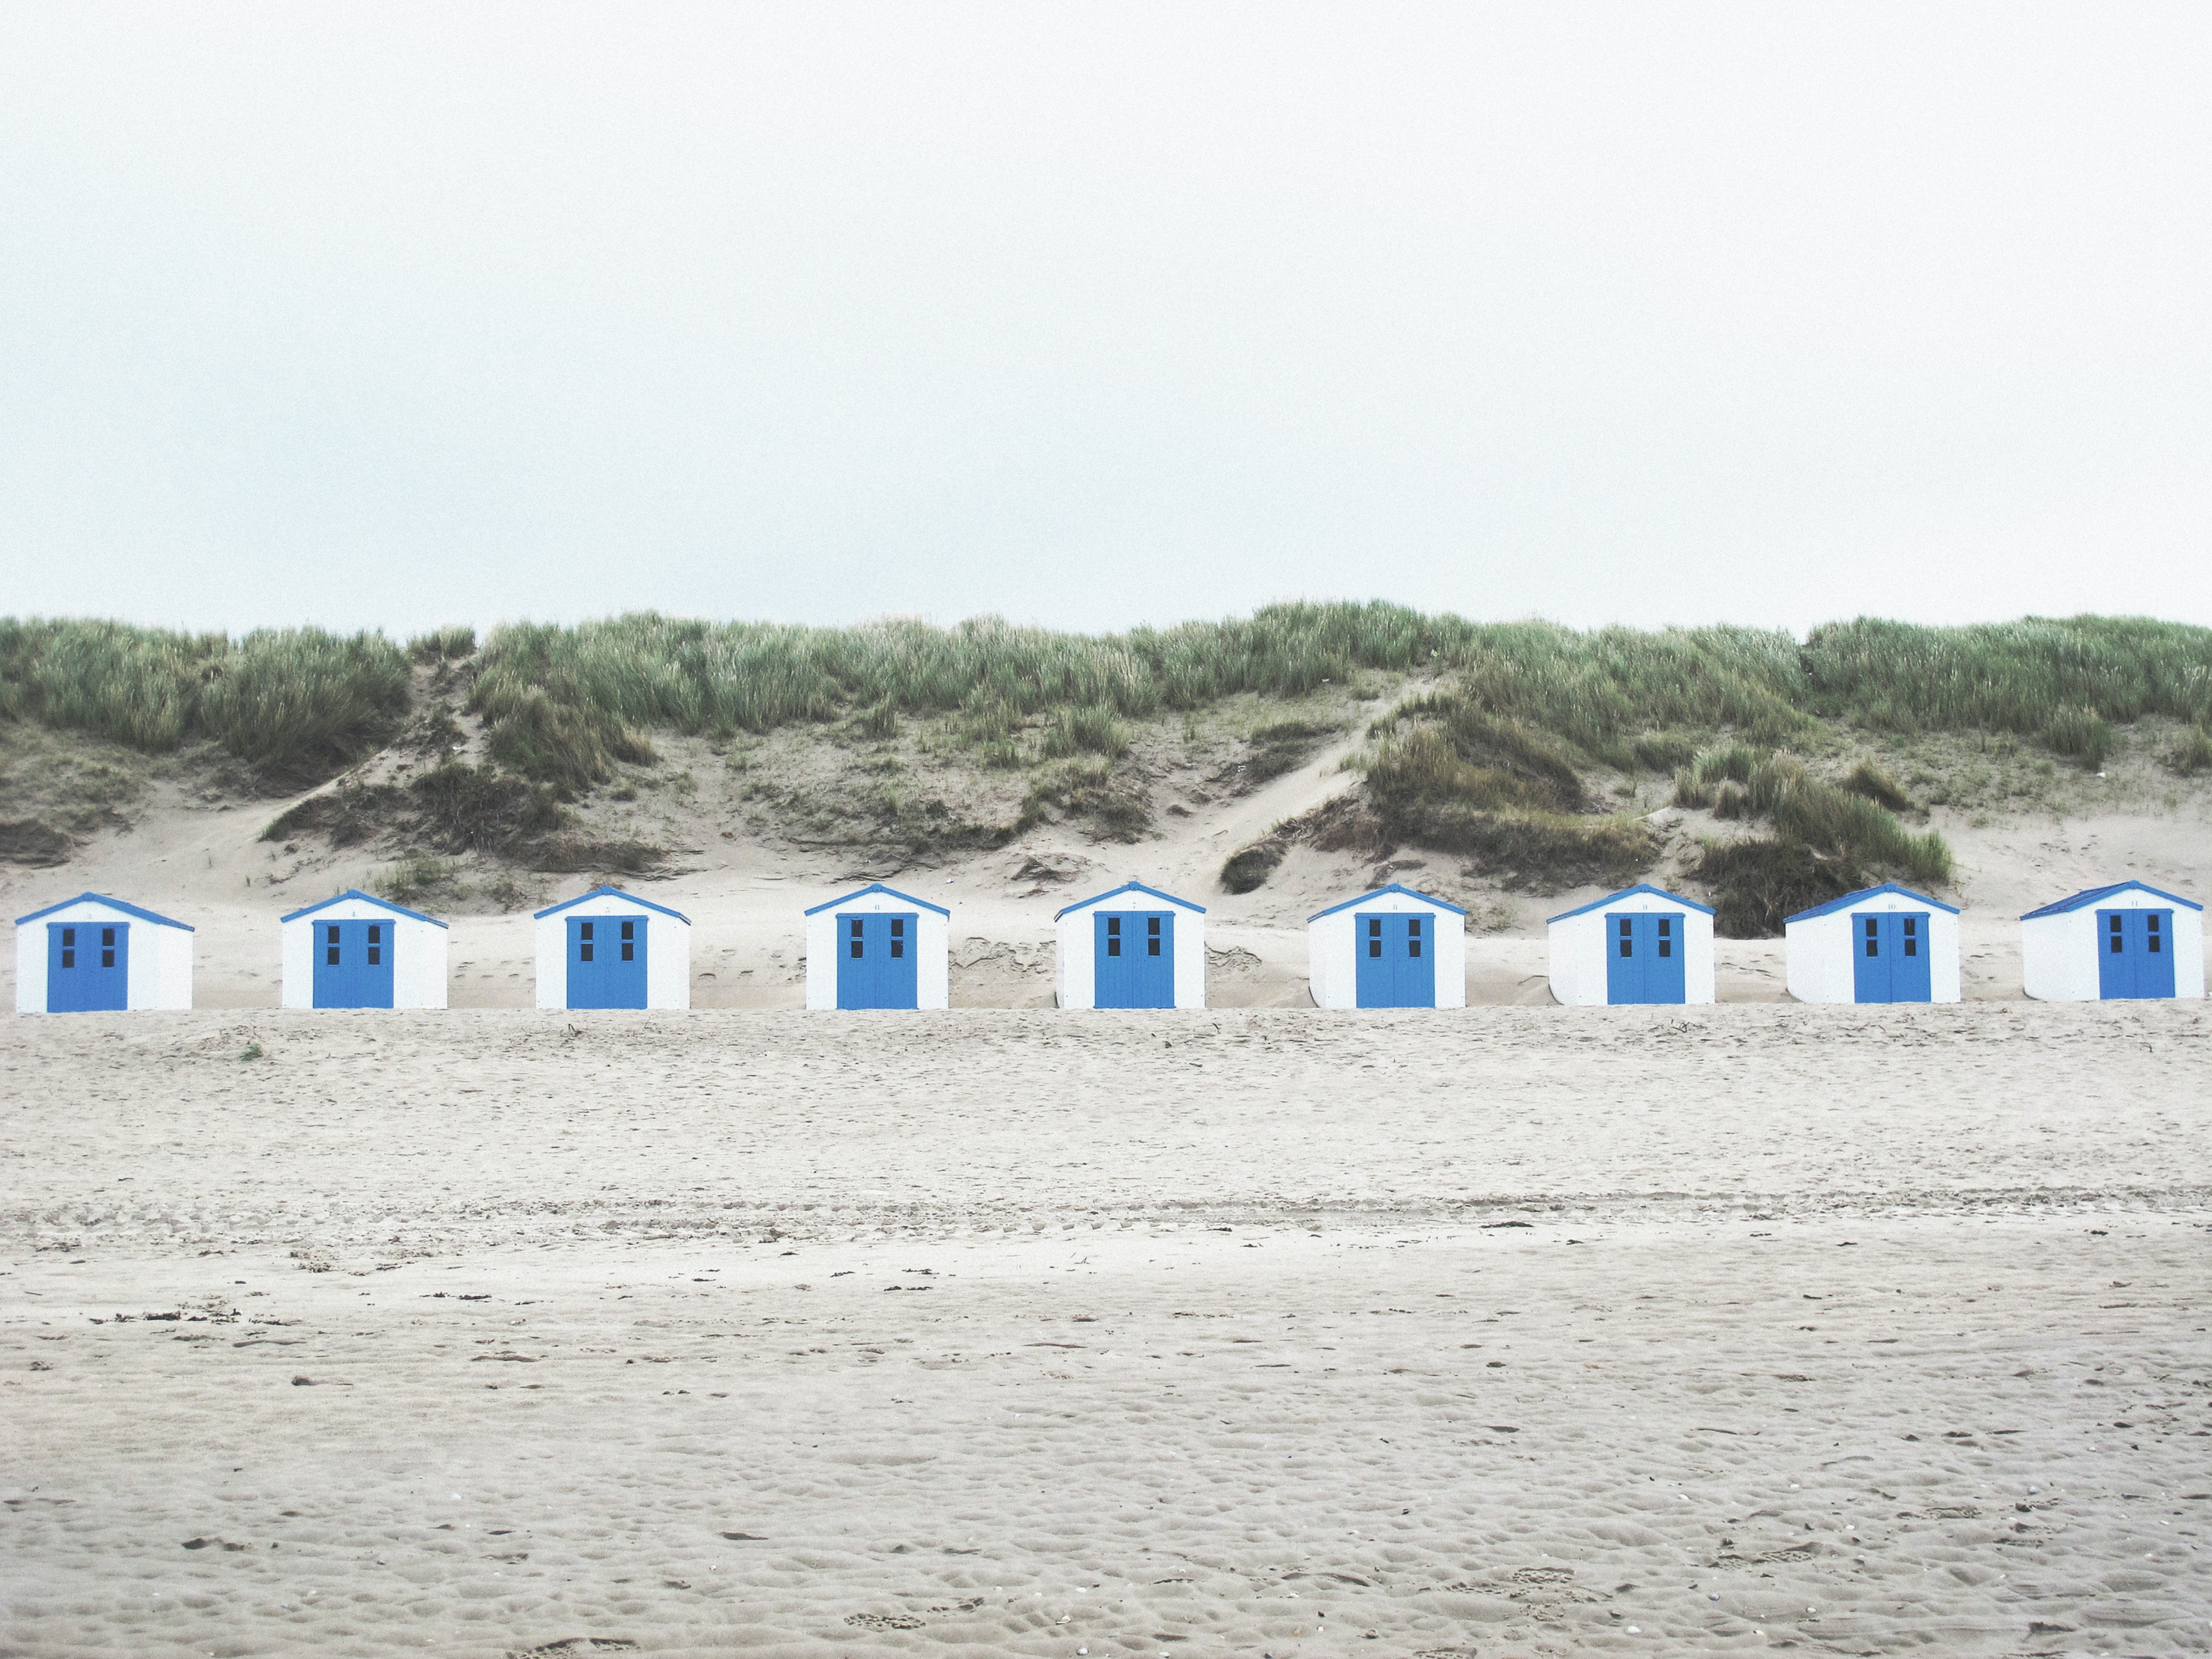 Blue and white beach huts on a sandy beach in New York, Texas